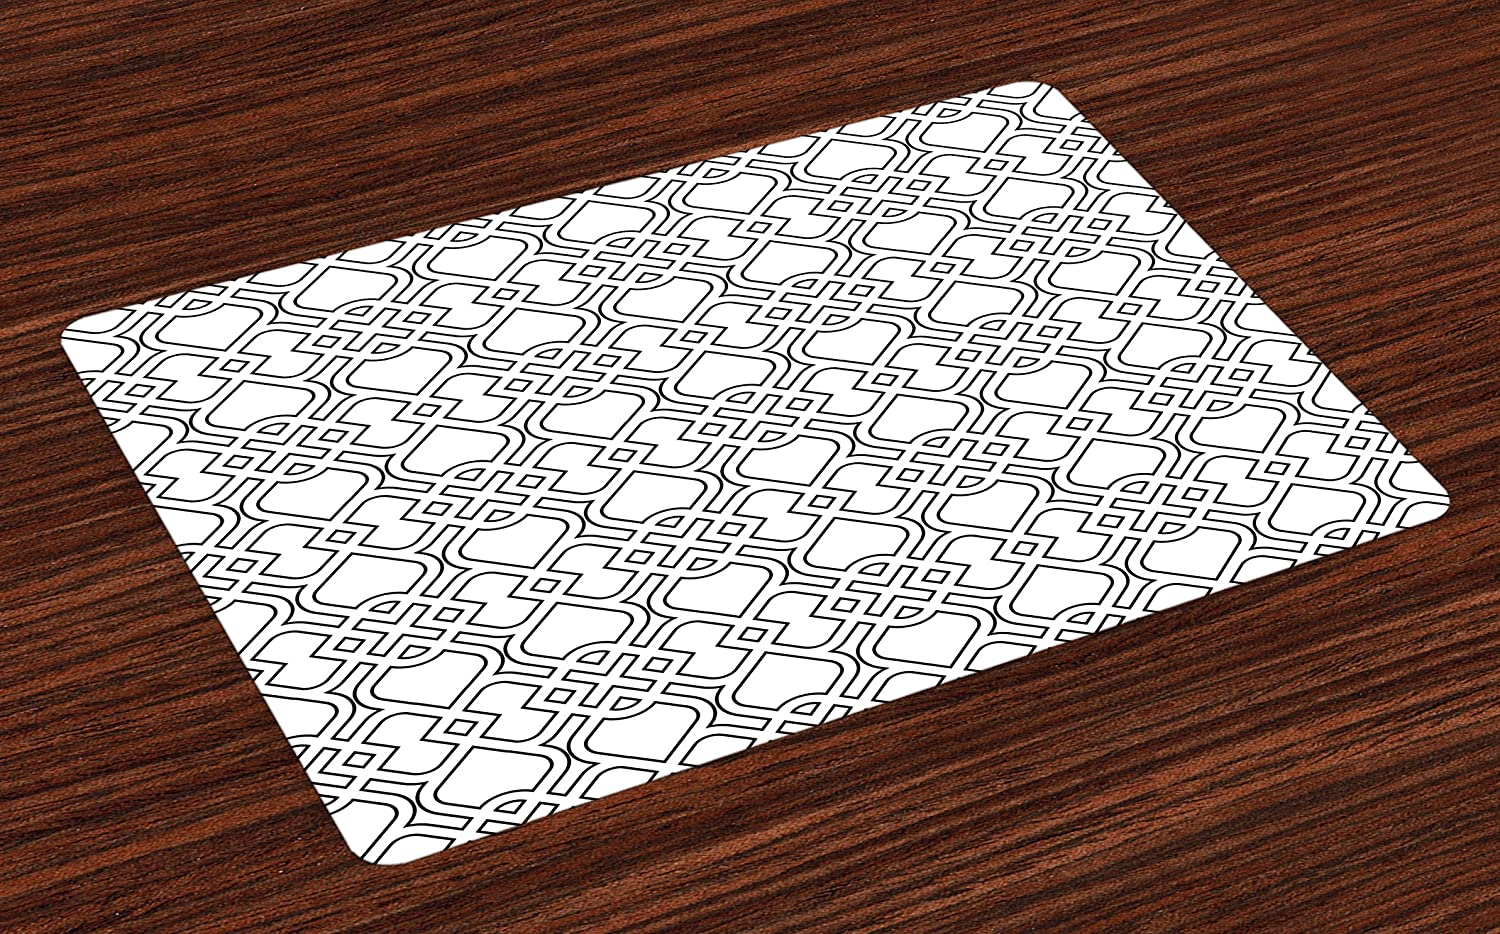 Lunarable Grey Place Mats Set of 4, Trippy Linked Delicate Pattern with Tile Influences Oriental Design, Washable Fabric Placemats for Dining Room Kitchen Table Decor, White